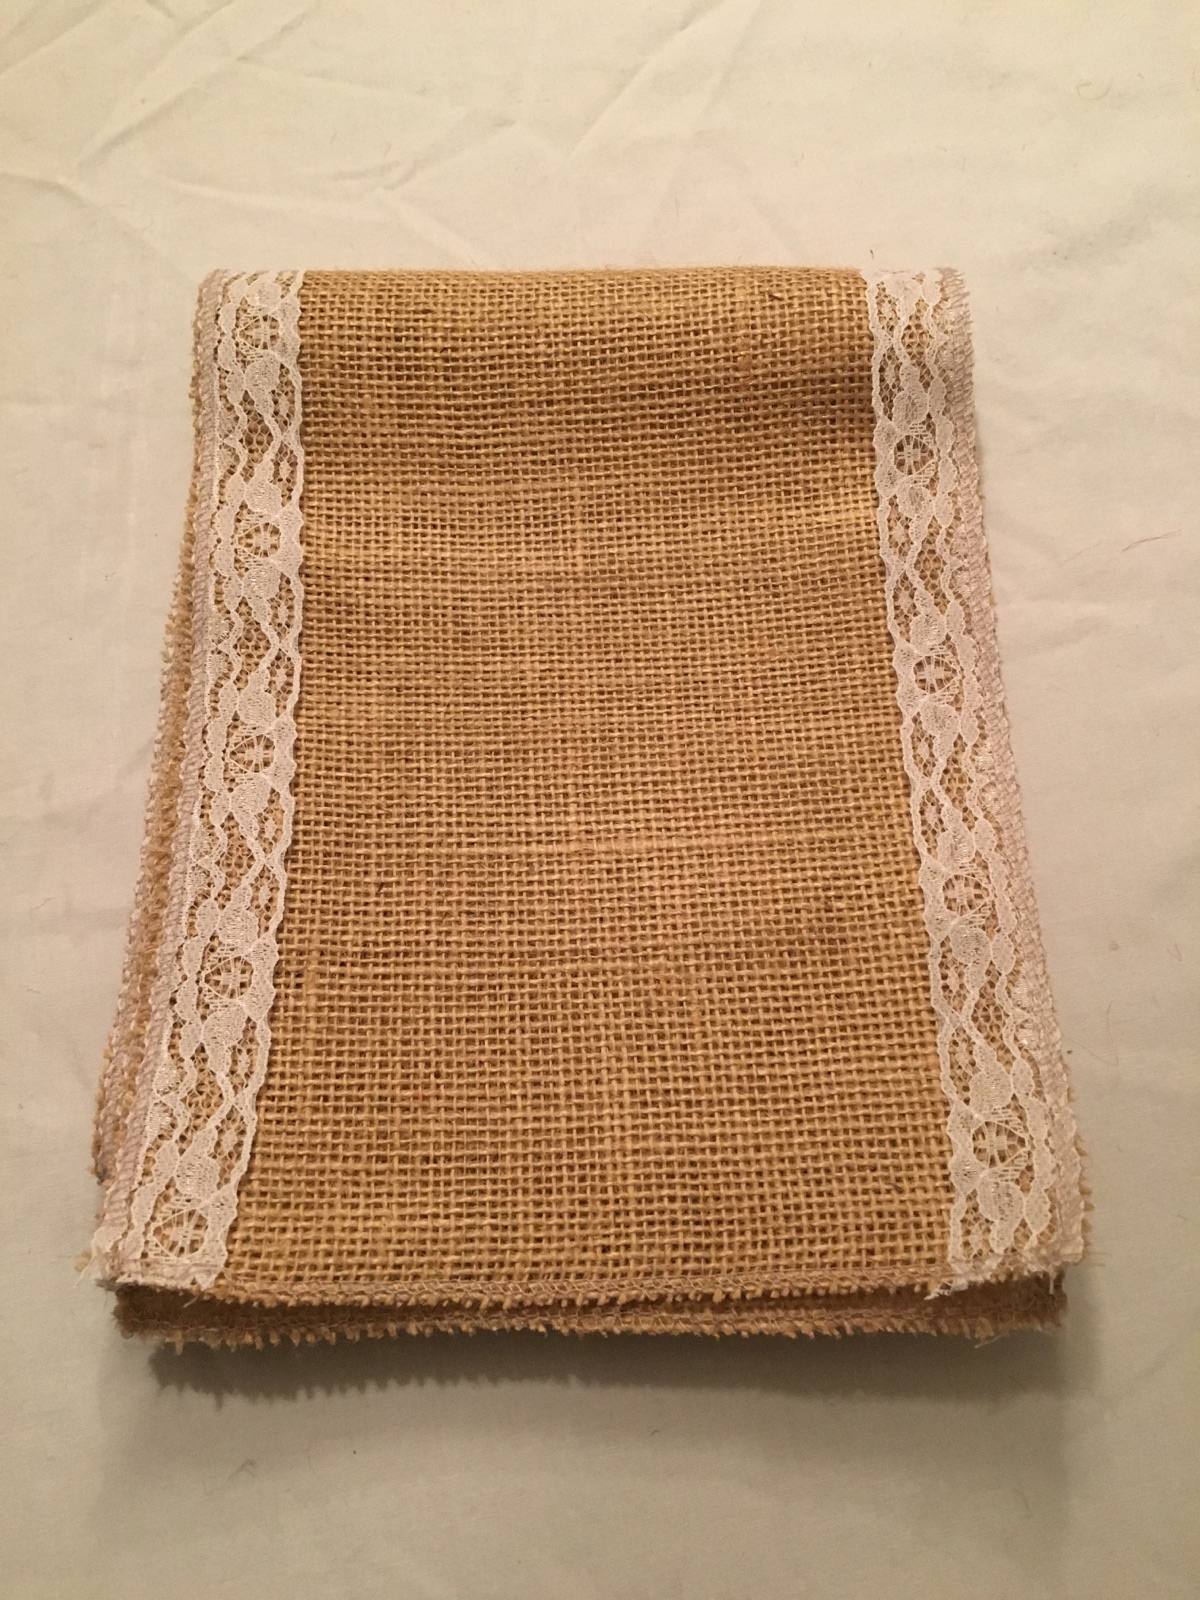 "7"" Natural Burlap Ribbon With White Floral Lace - 6 foot length"